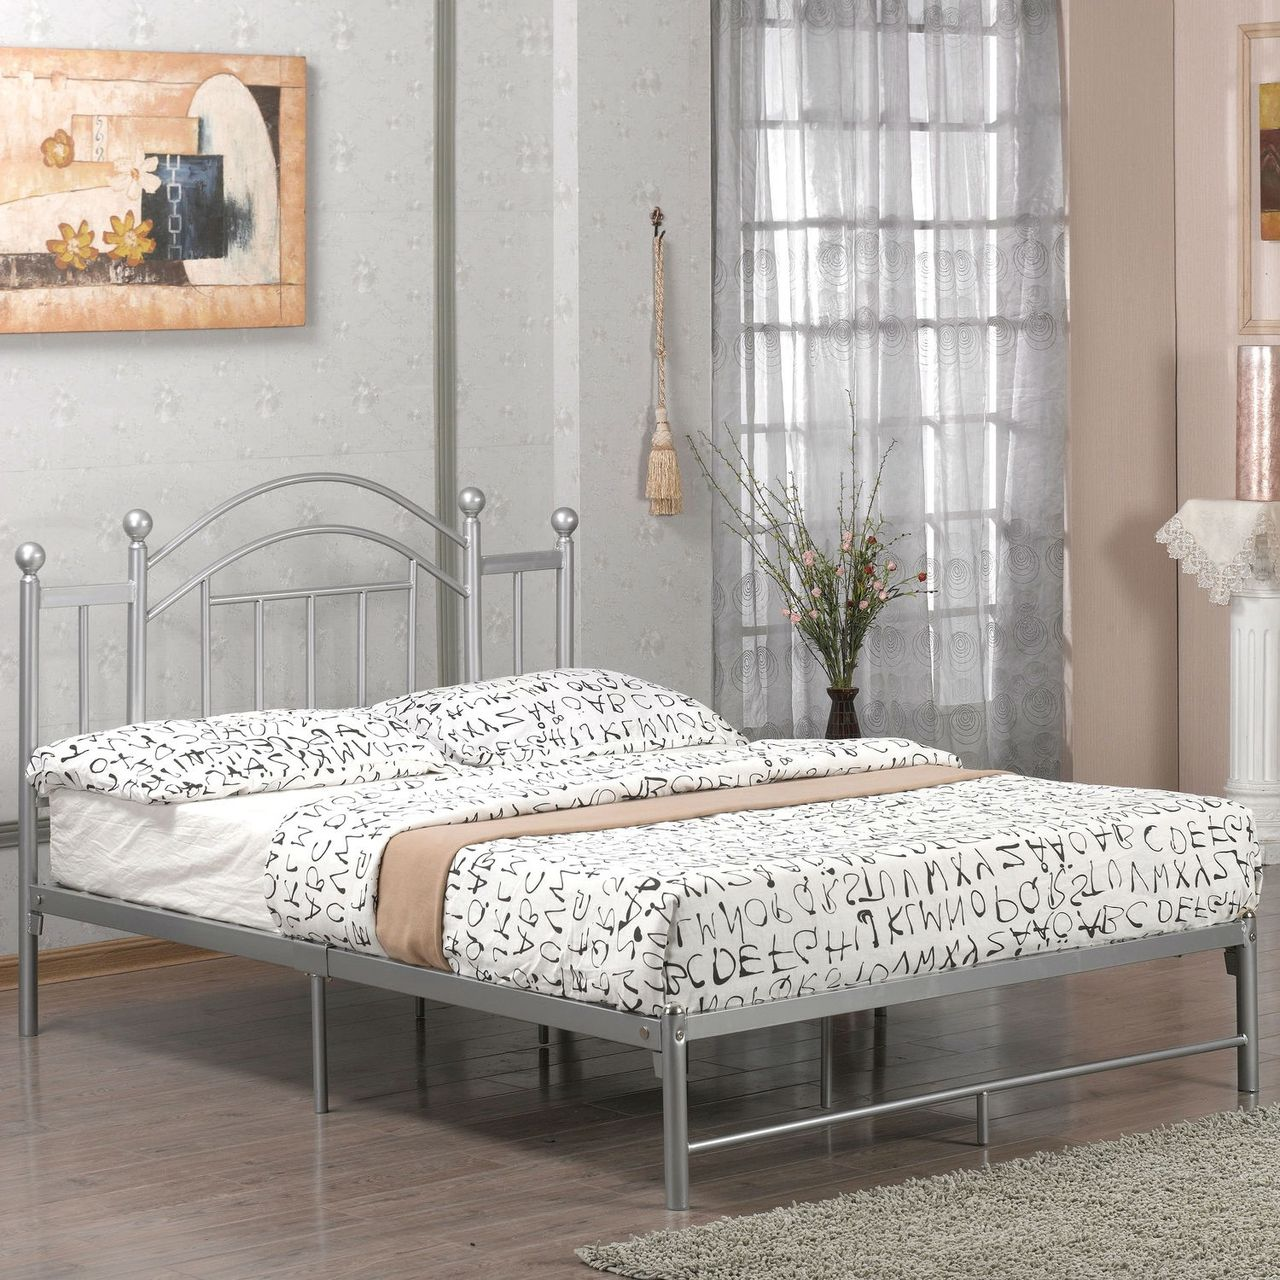 Full Metal Platform Bed Frame with Headboard and Footboard